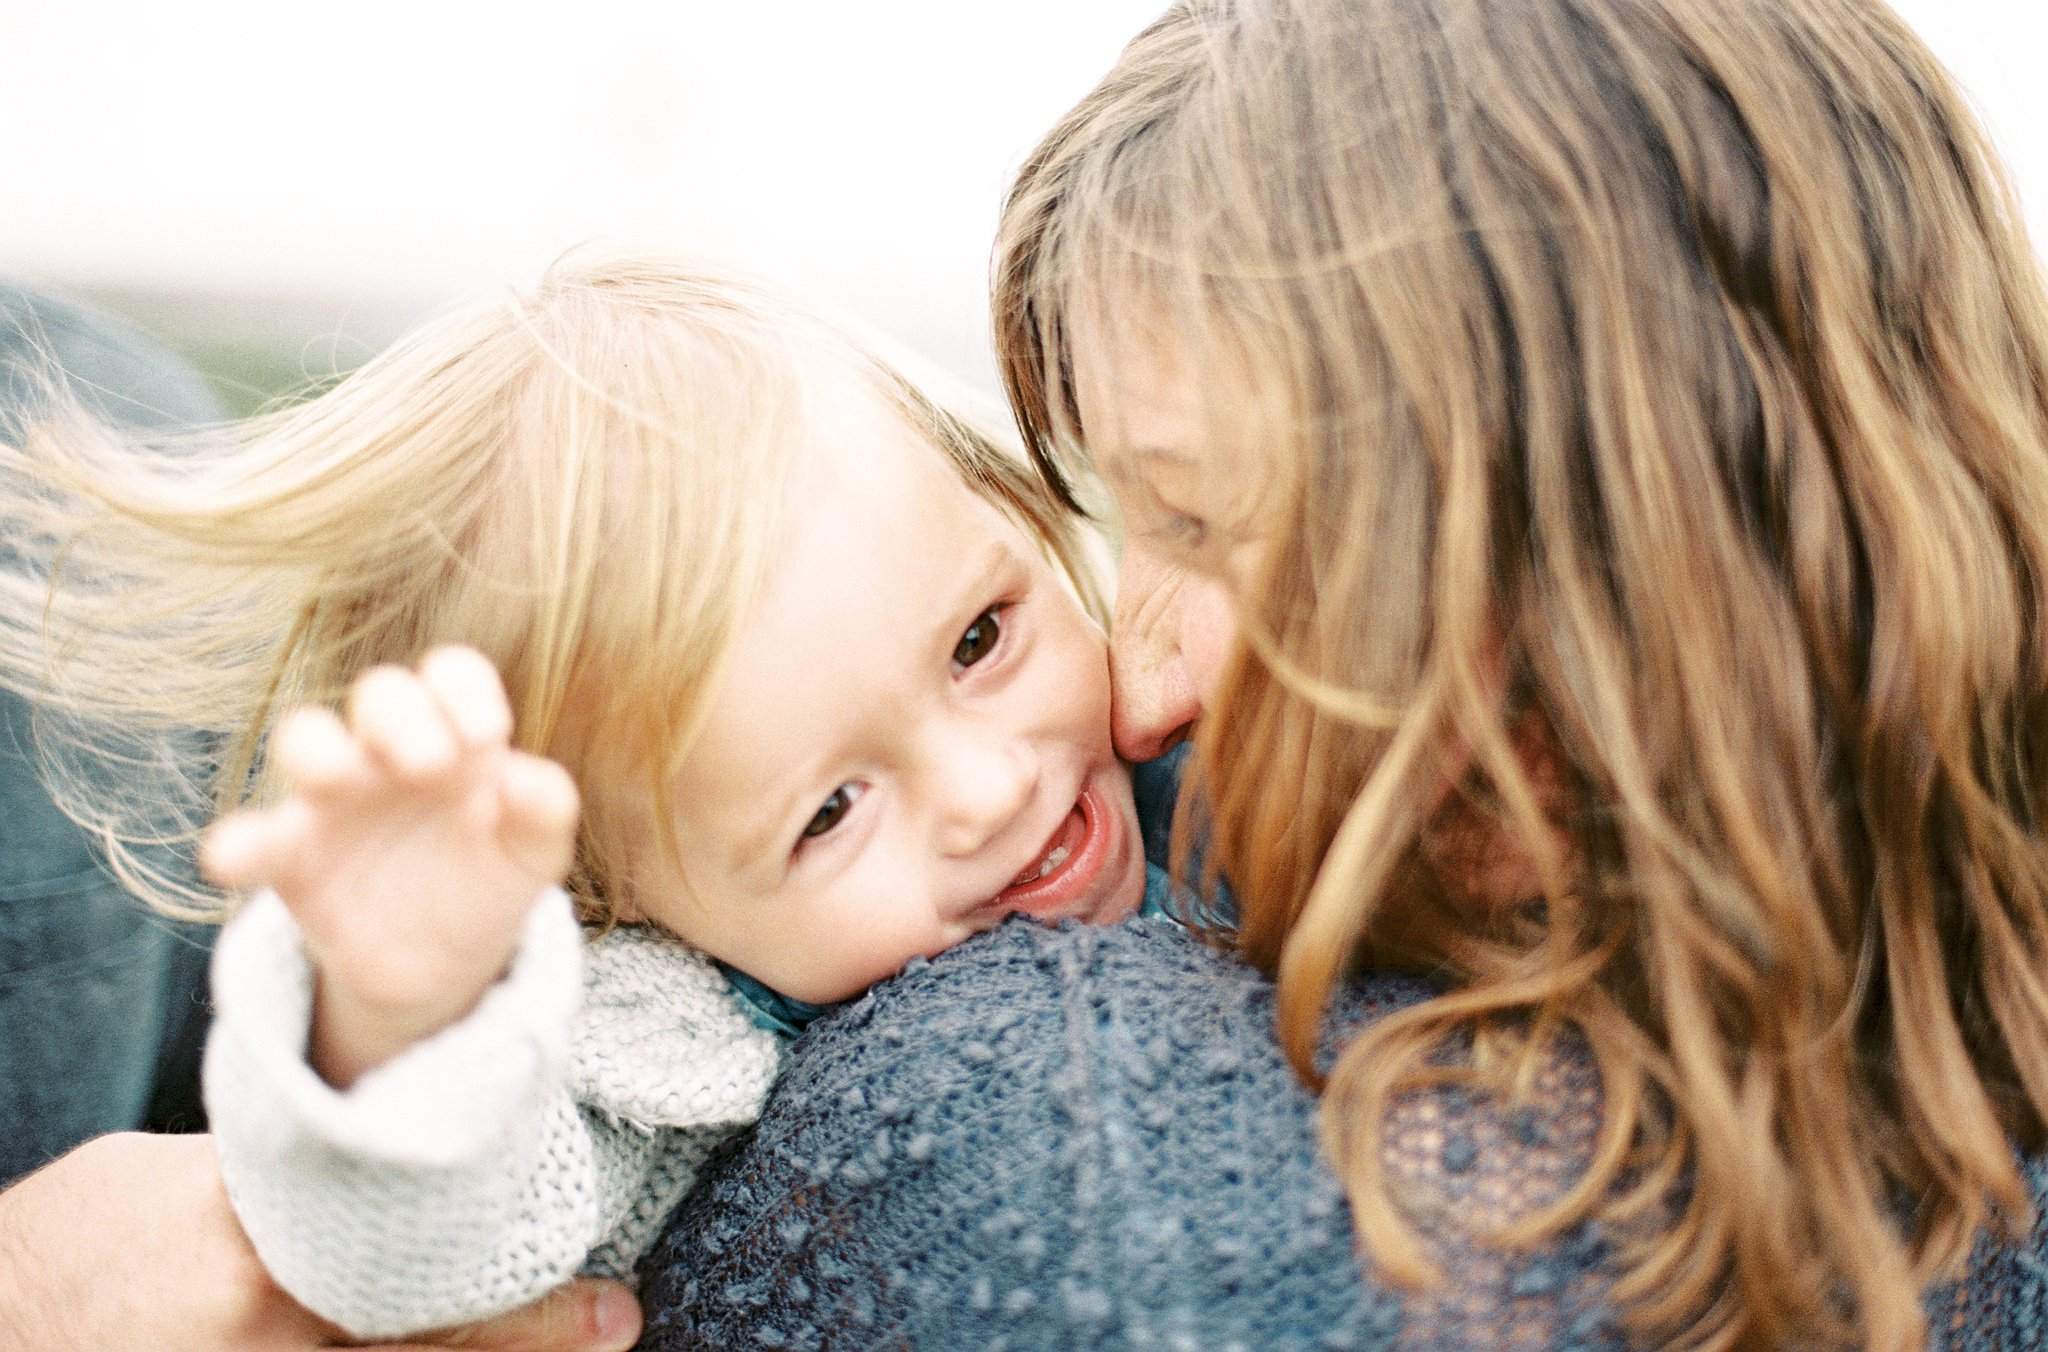 san francisco family session san francisco family photographer shannon griffin photography_0052.jpg